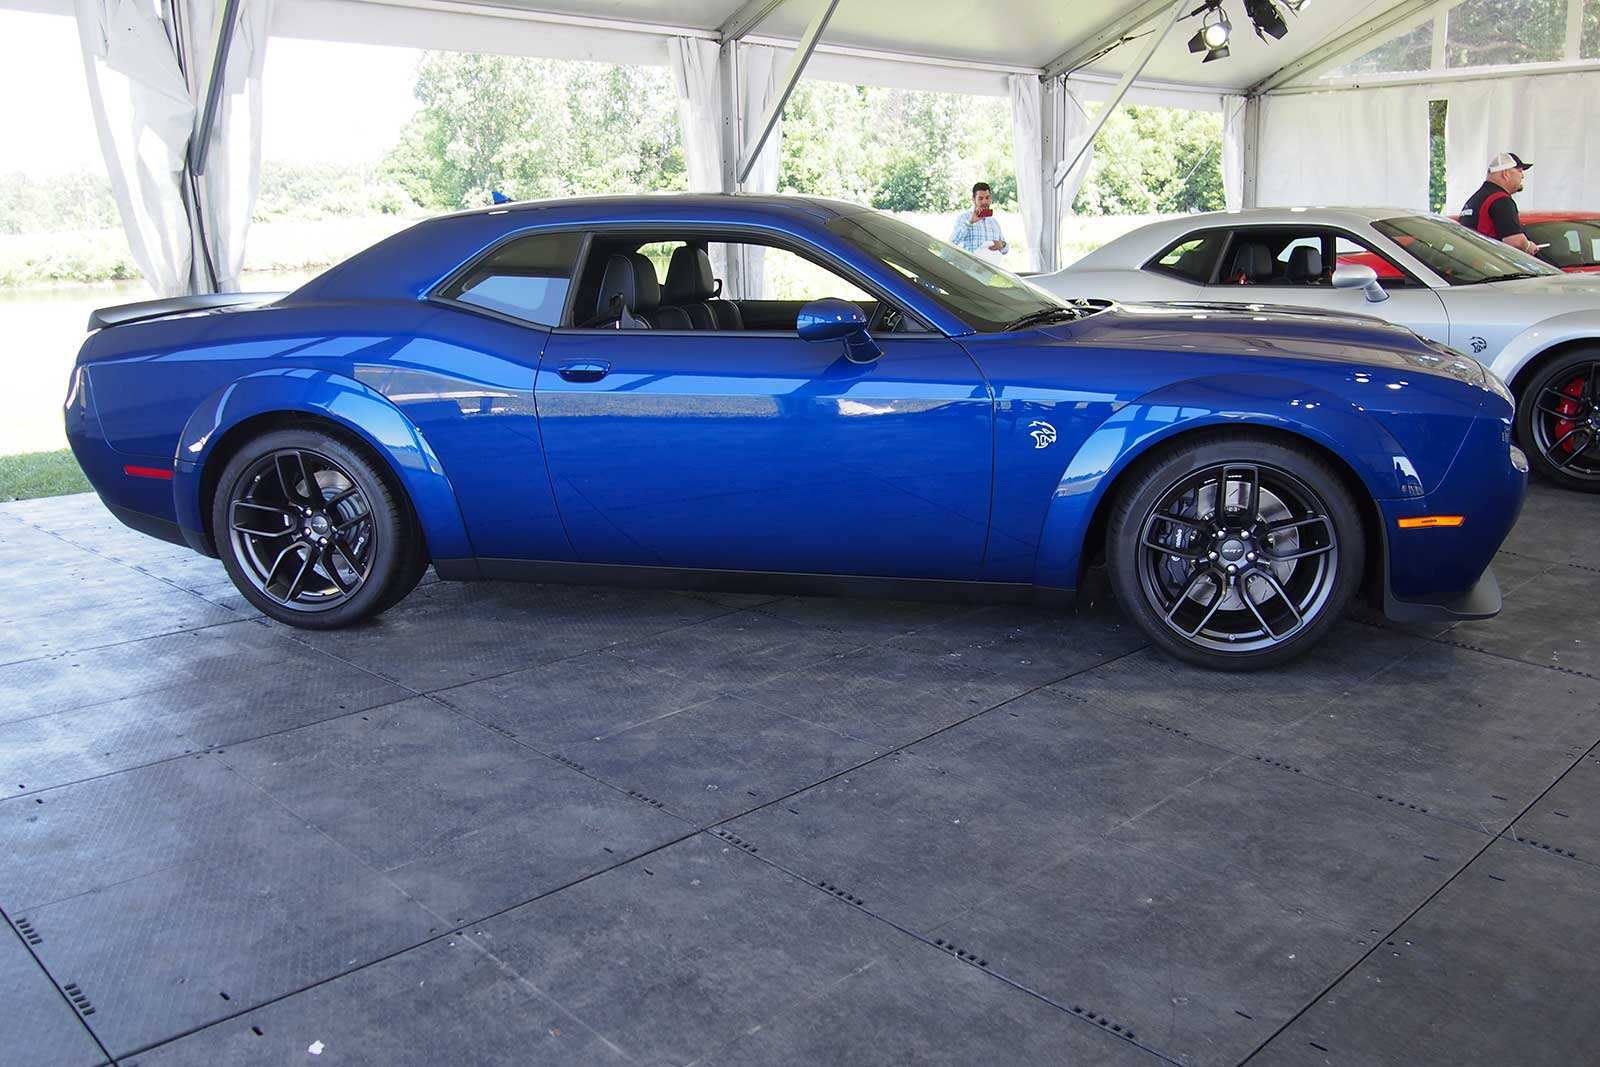 43 A 2019 Chrysler Hellcat Ratings